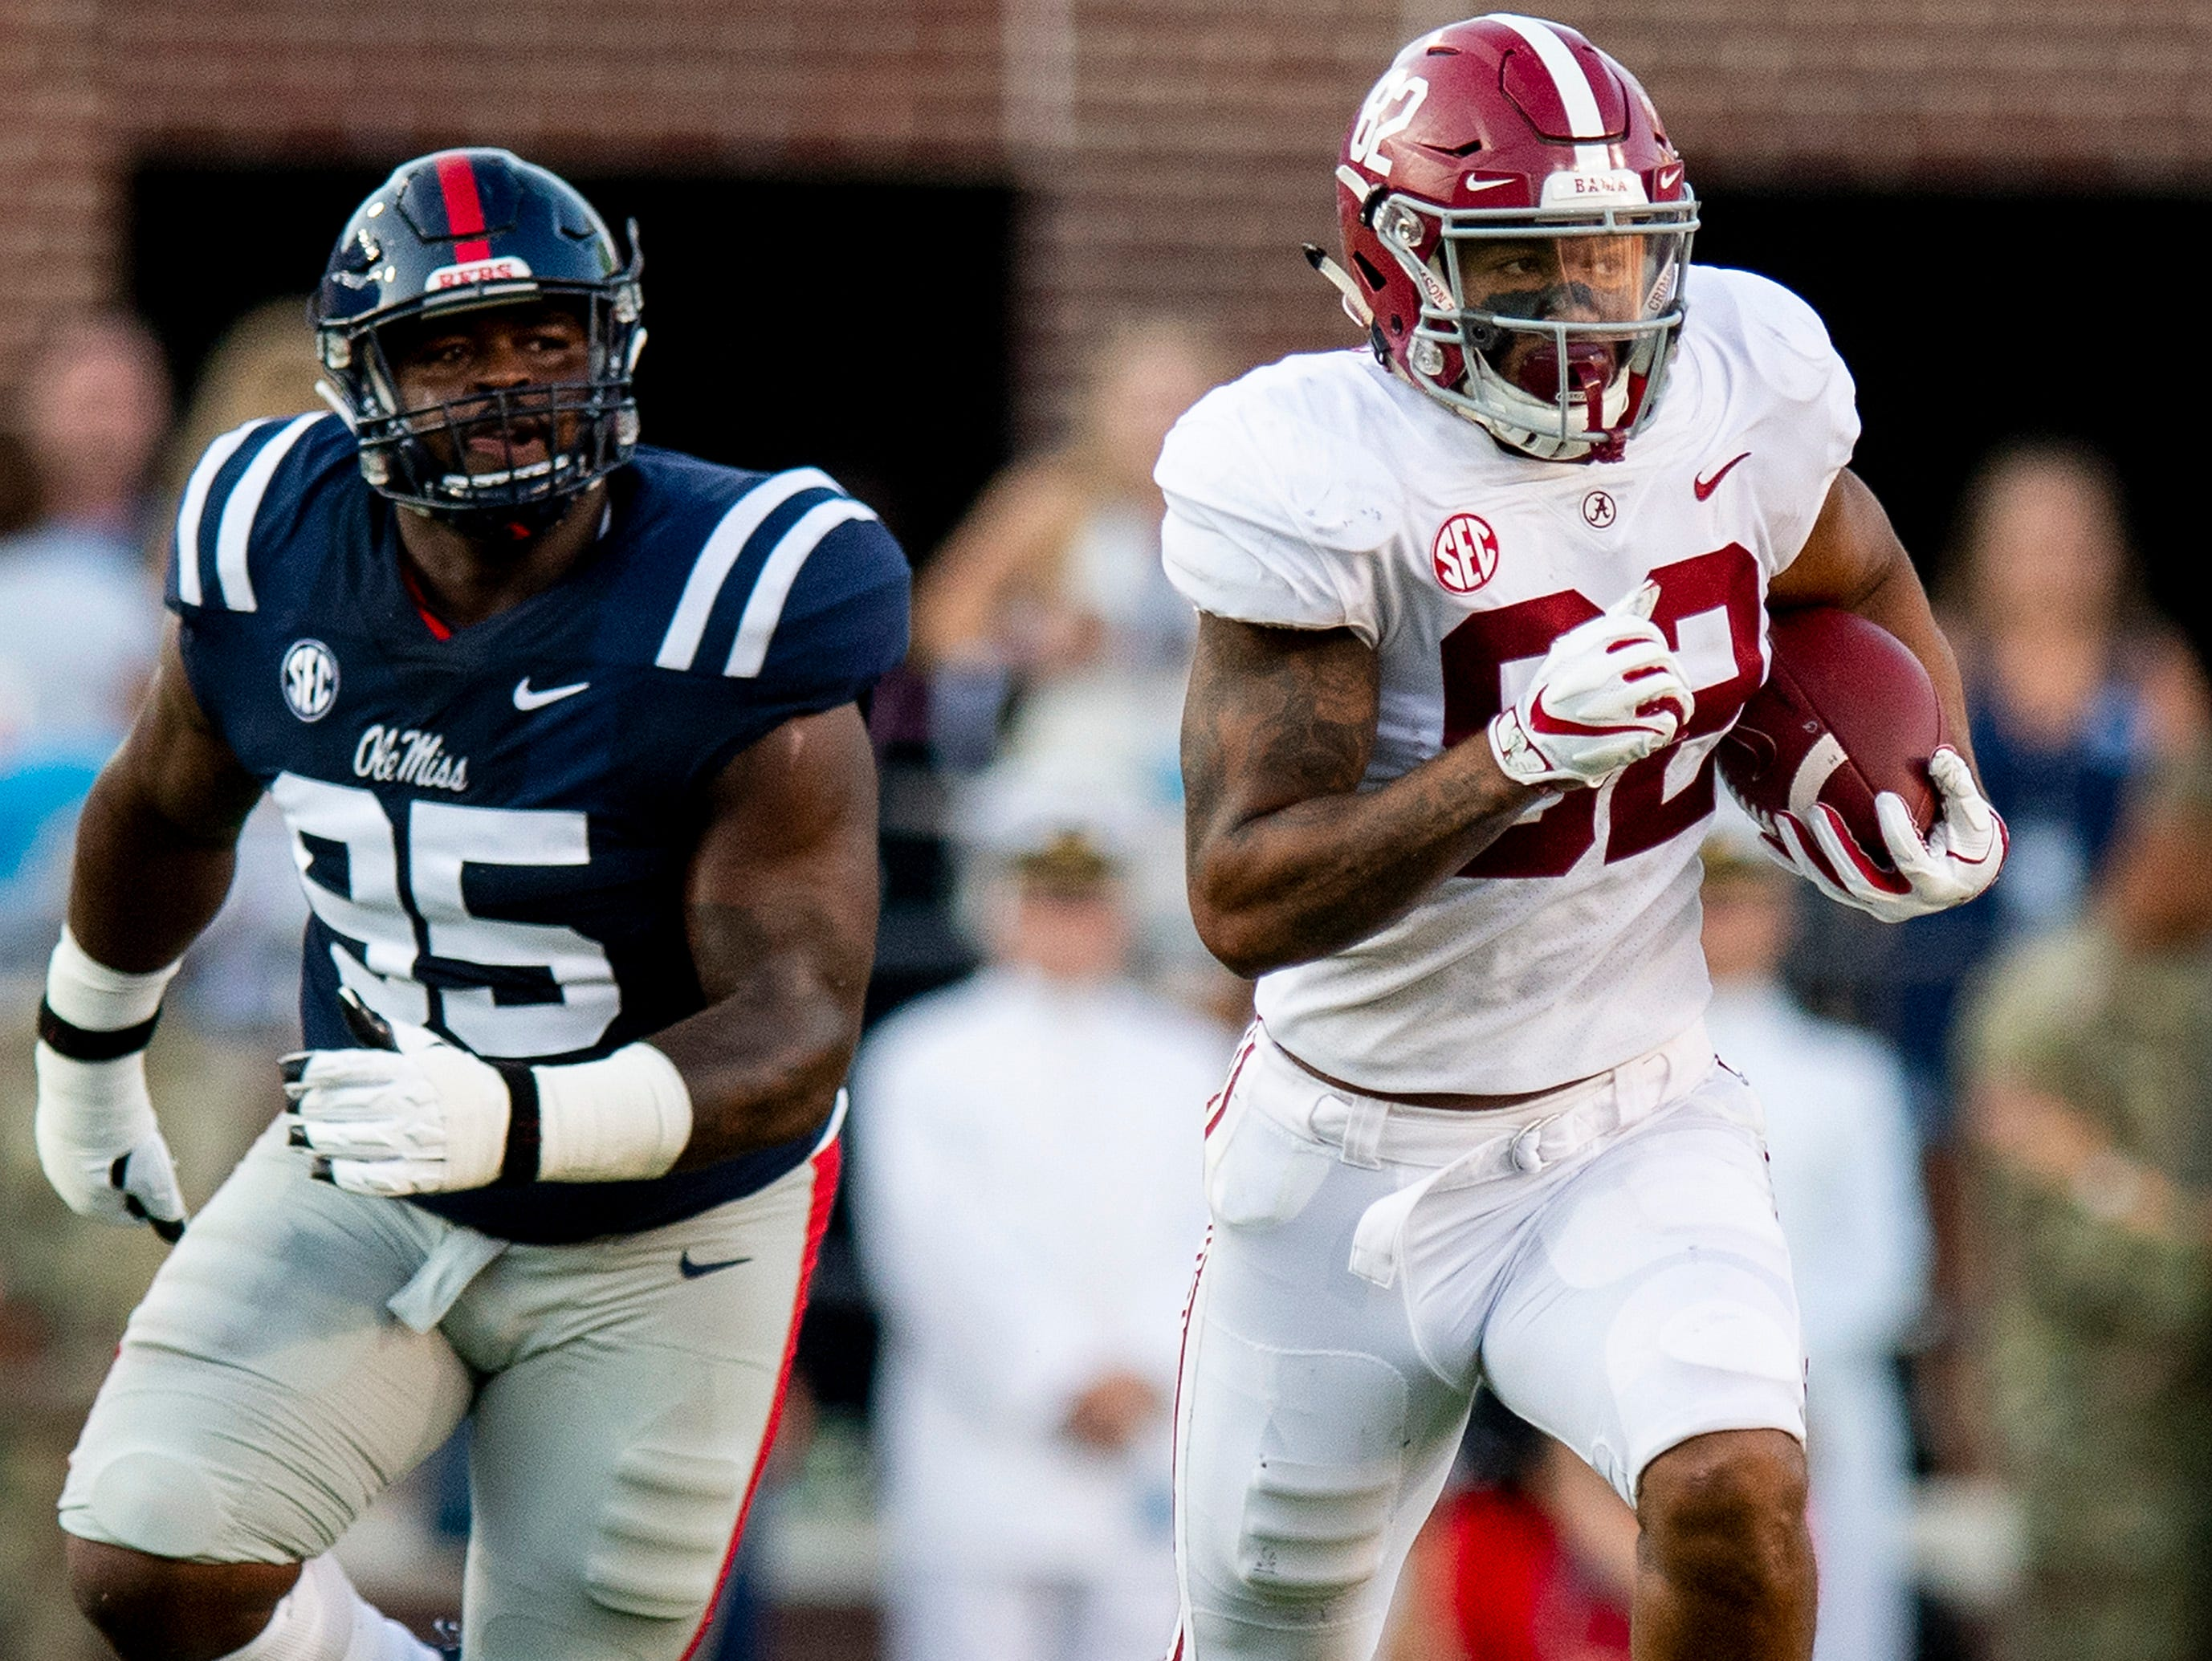 Alabama tight end Irv Smith Jr. (82) against Ole Miss In first half action in Oxford, Ms., on Saturday September 15, 2018.